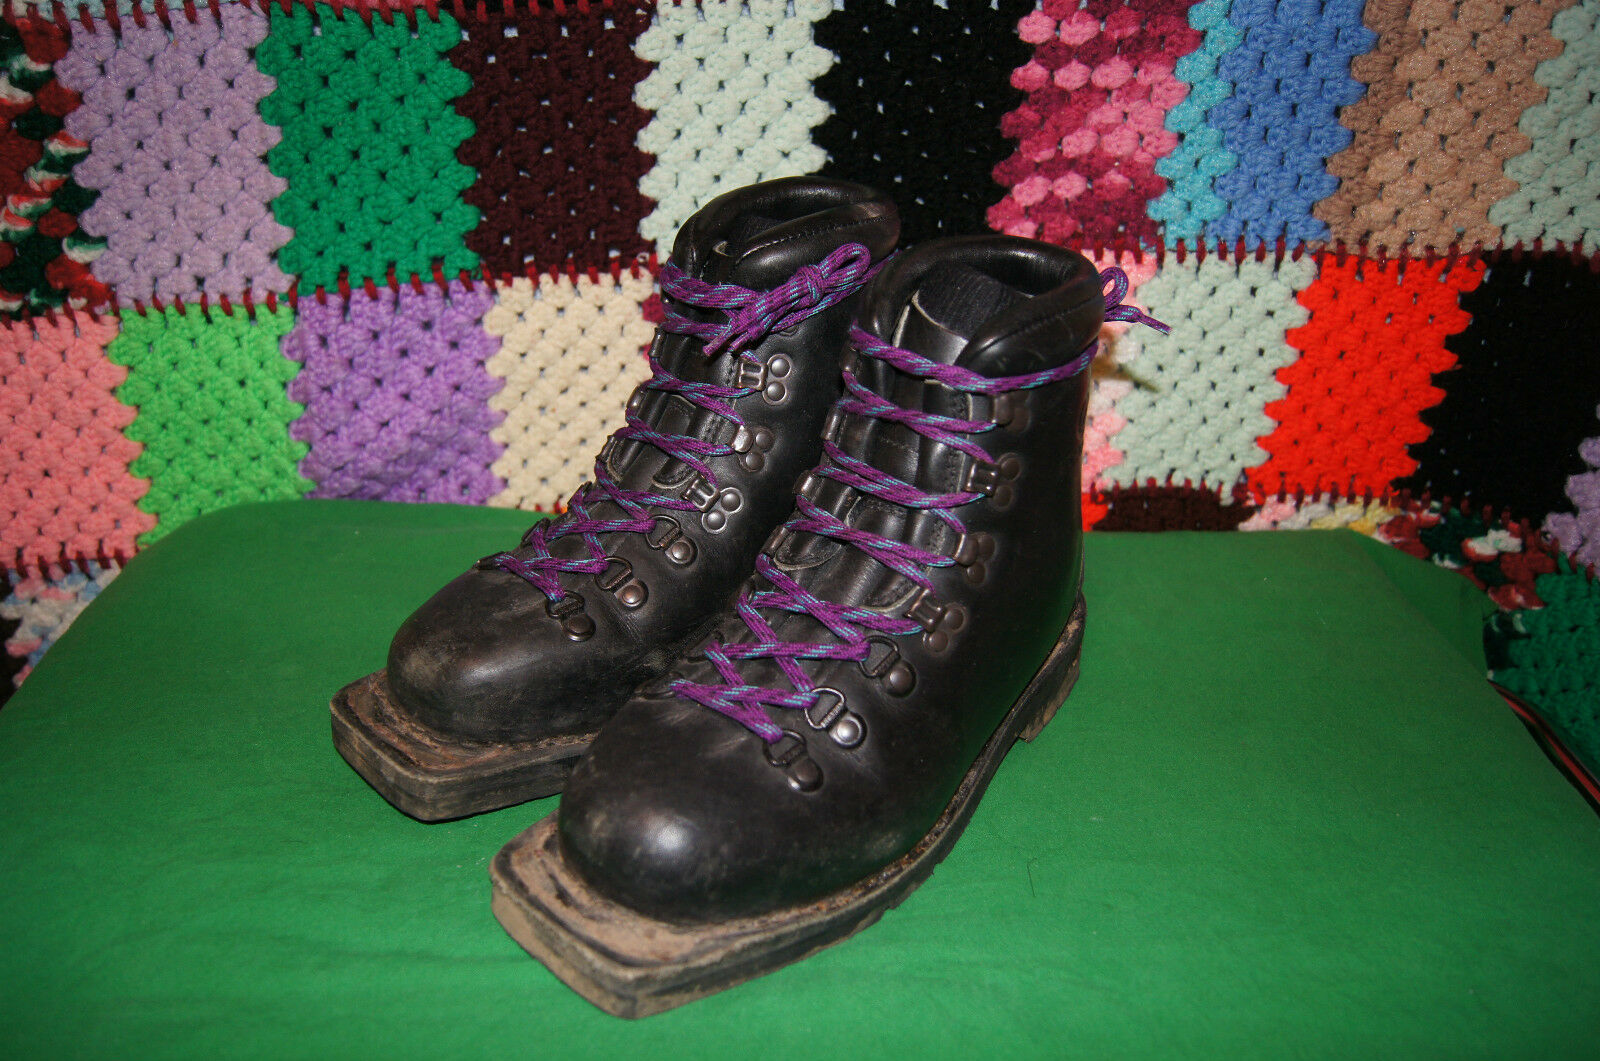 SCARPA BOOTS WOMENS 7 MENS 6 UK SIZE 5 MADE IN ITALY CROSS COUNTRY SKI BOOTS 7